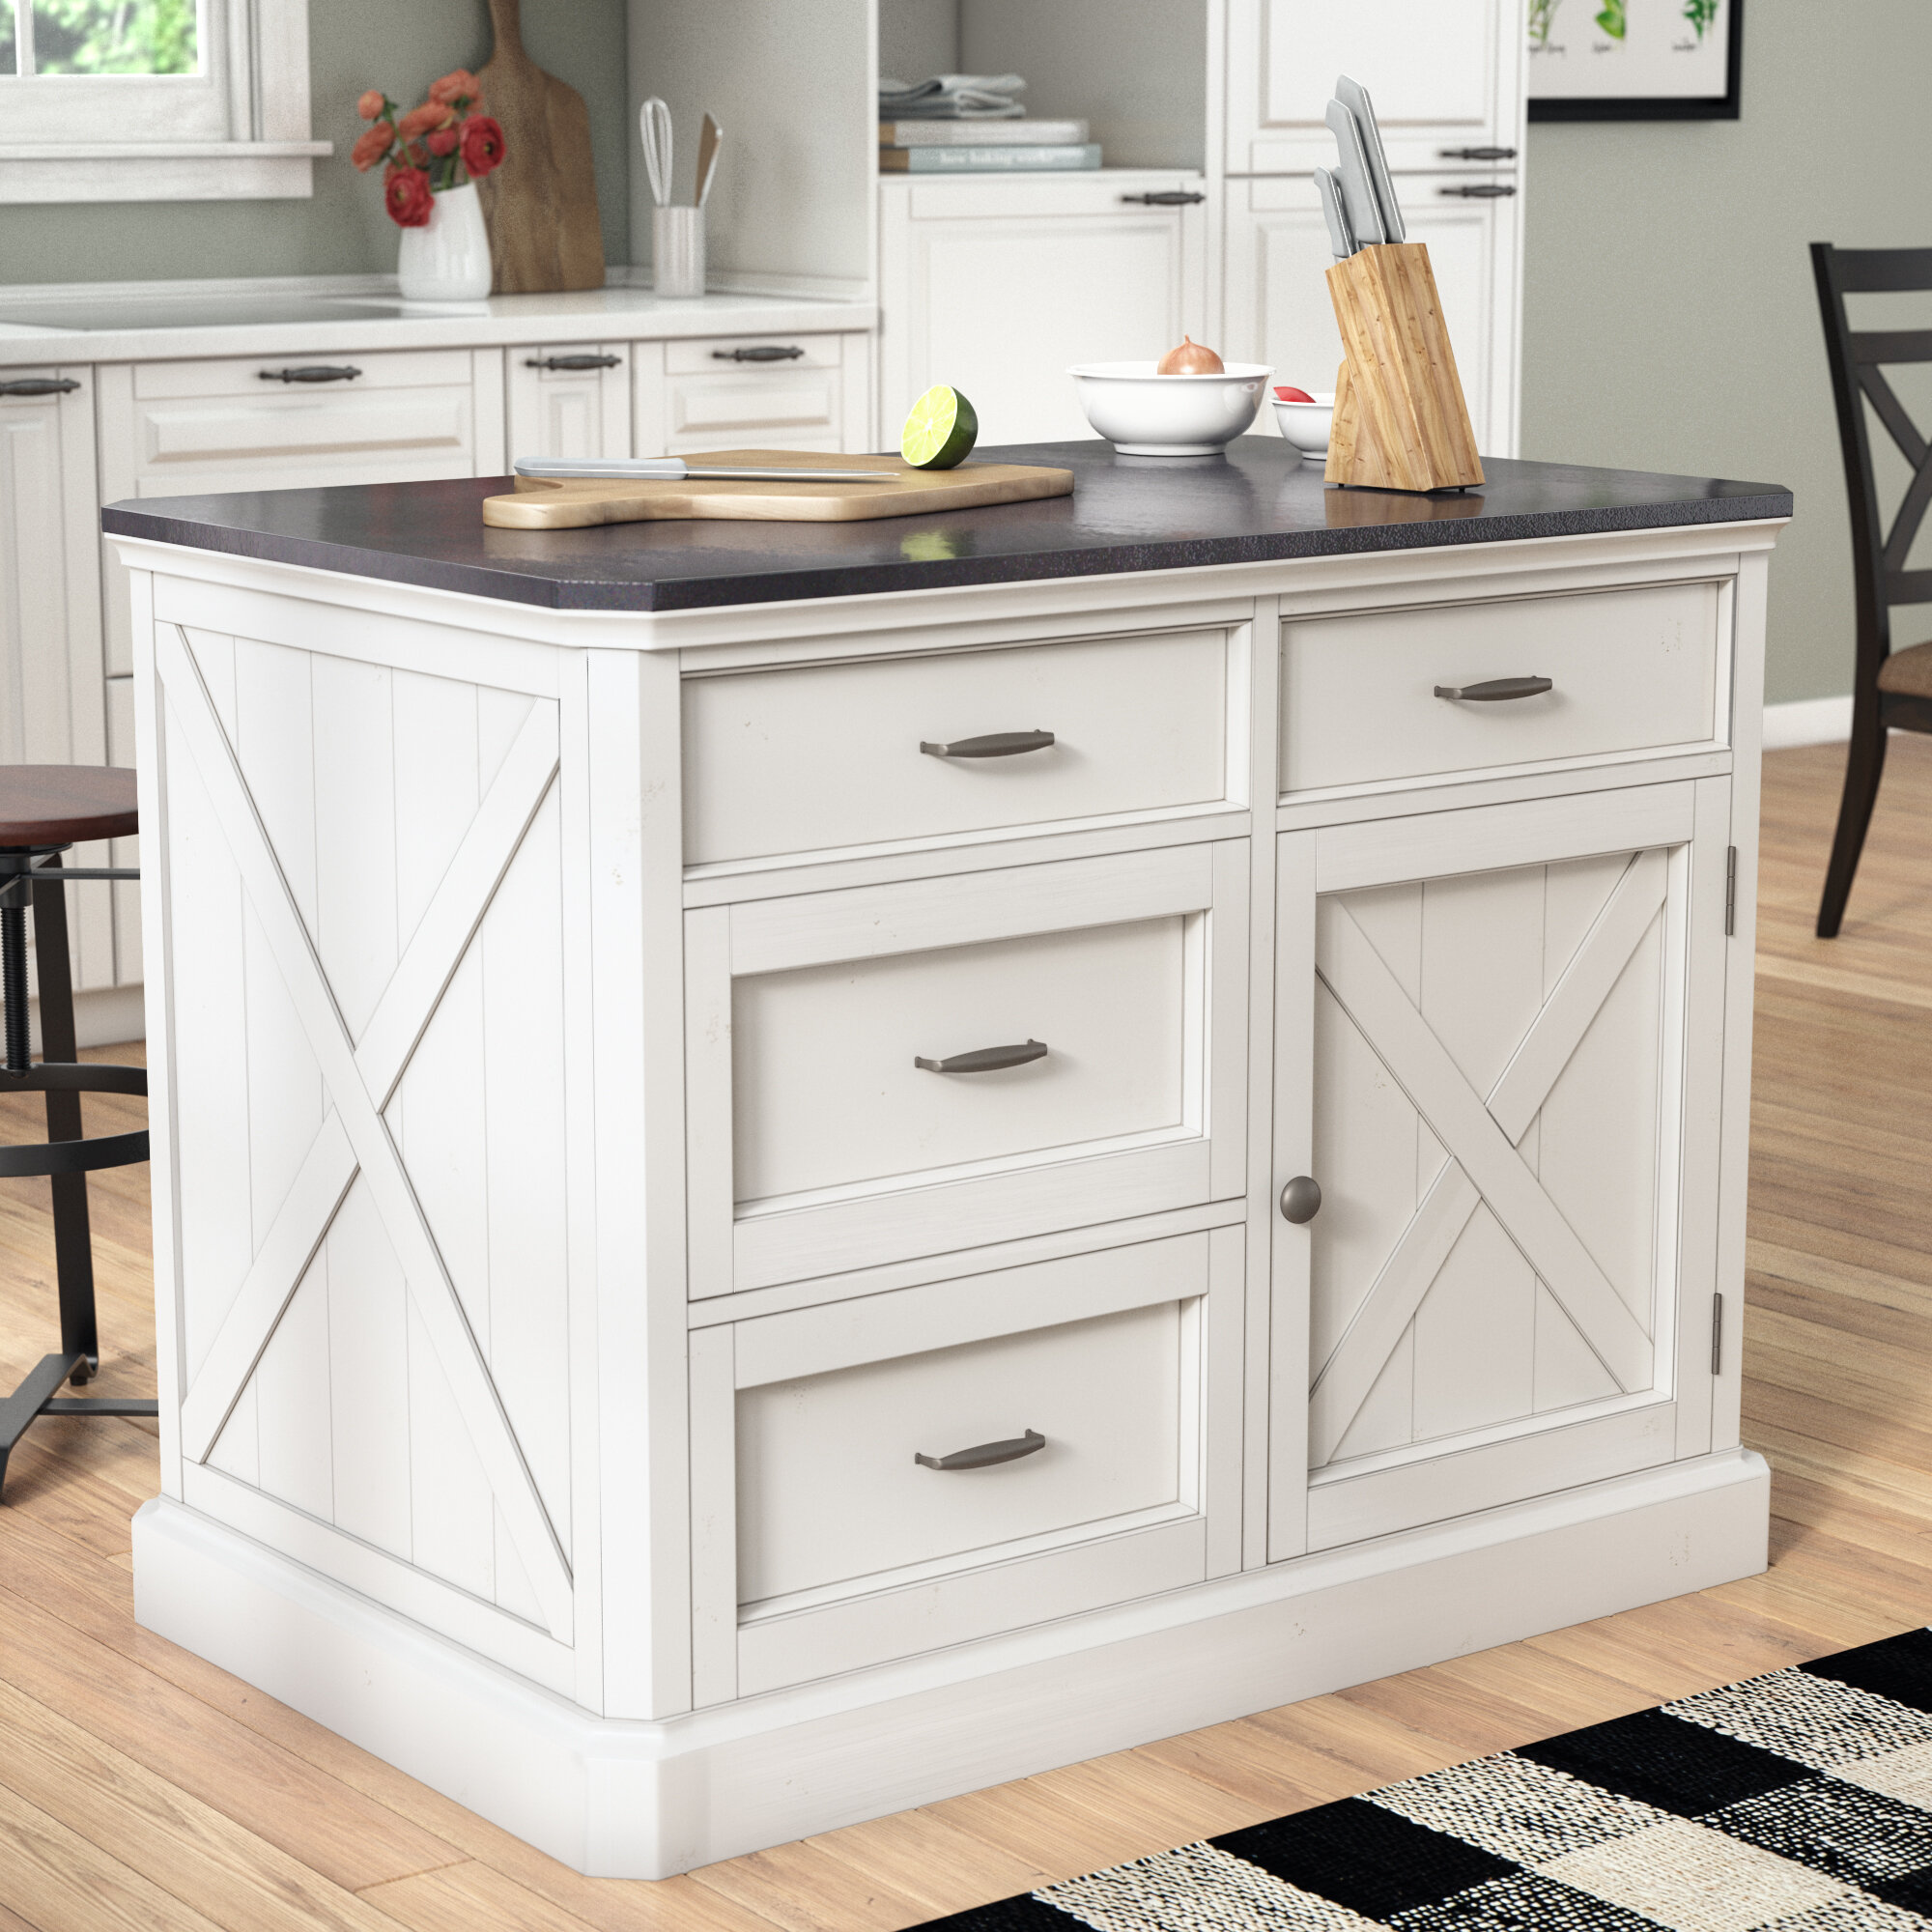 Laurel Foundry Modern Farmhouse Ryles Kitchen Island with Engineered ...